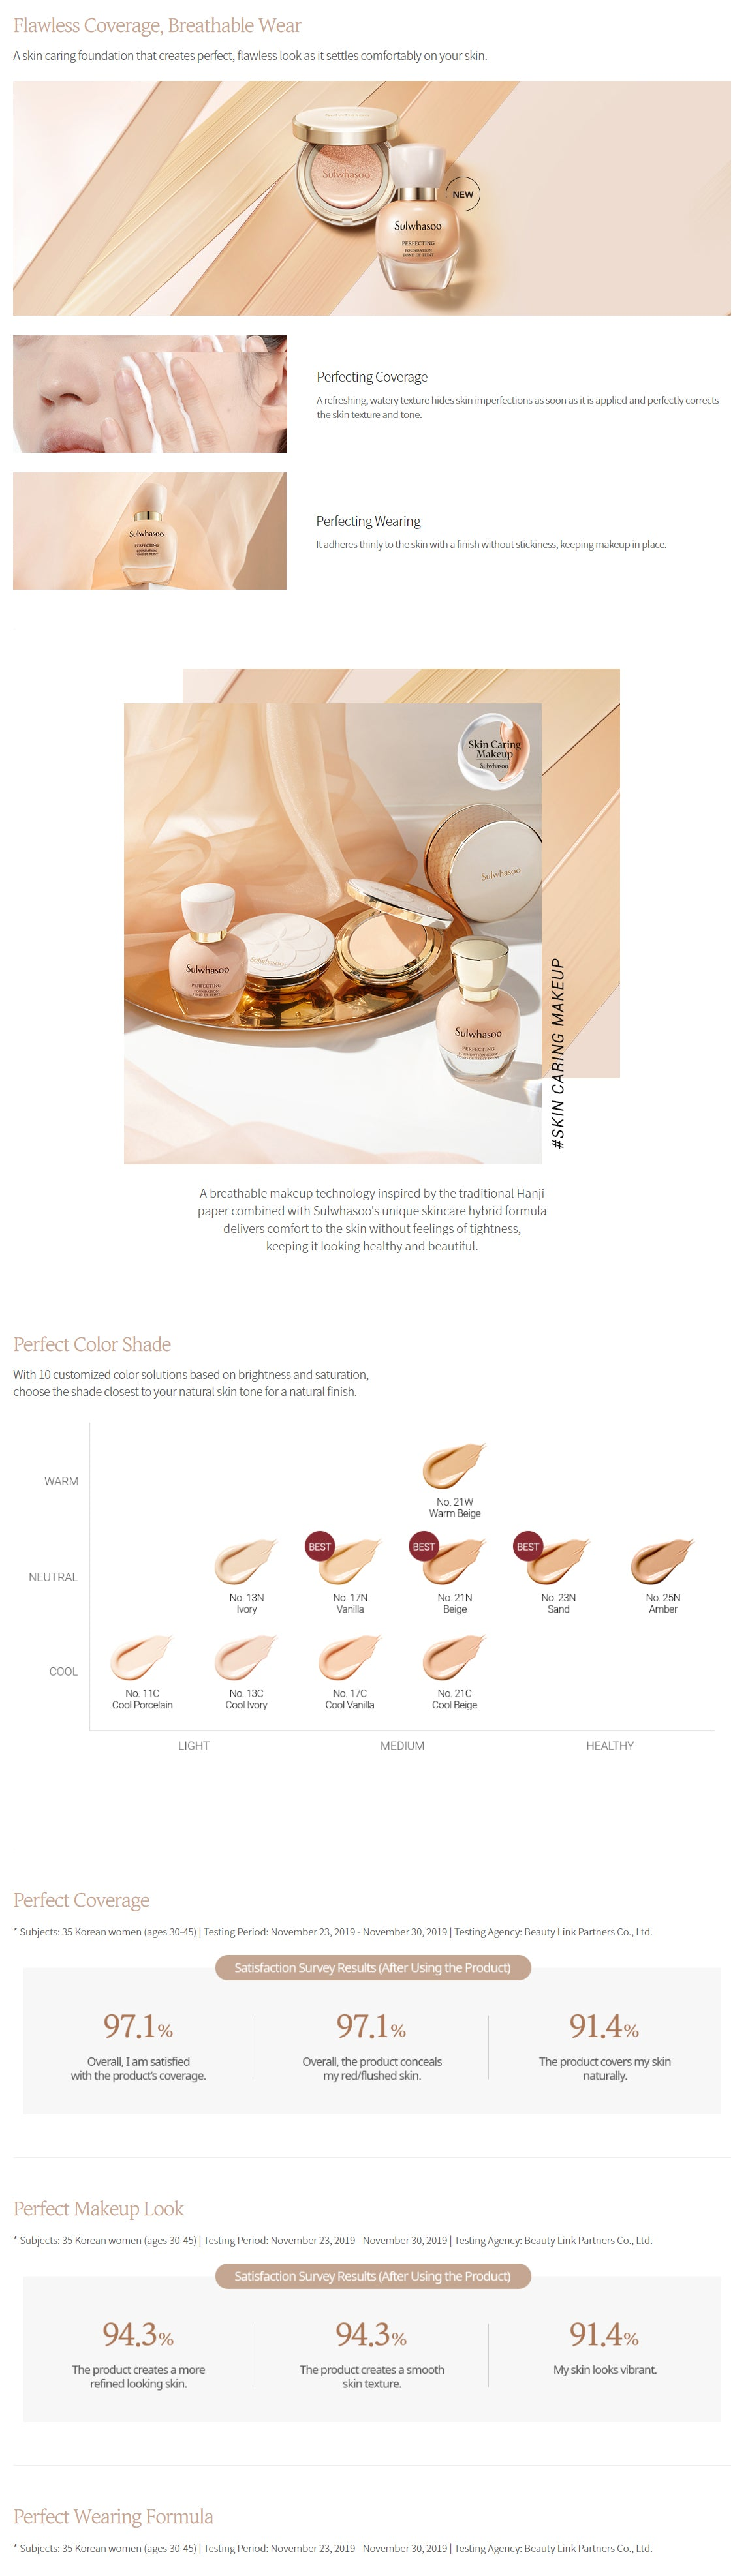 Sulwhasoo Perfecting Foundation 35ml